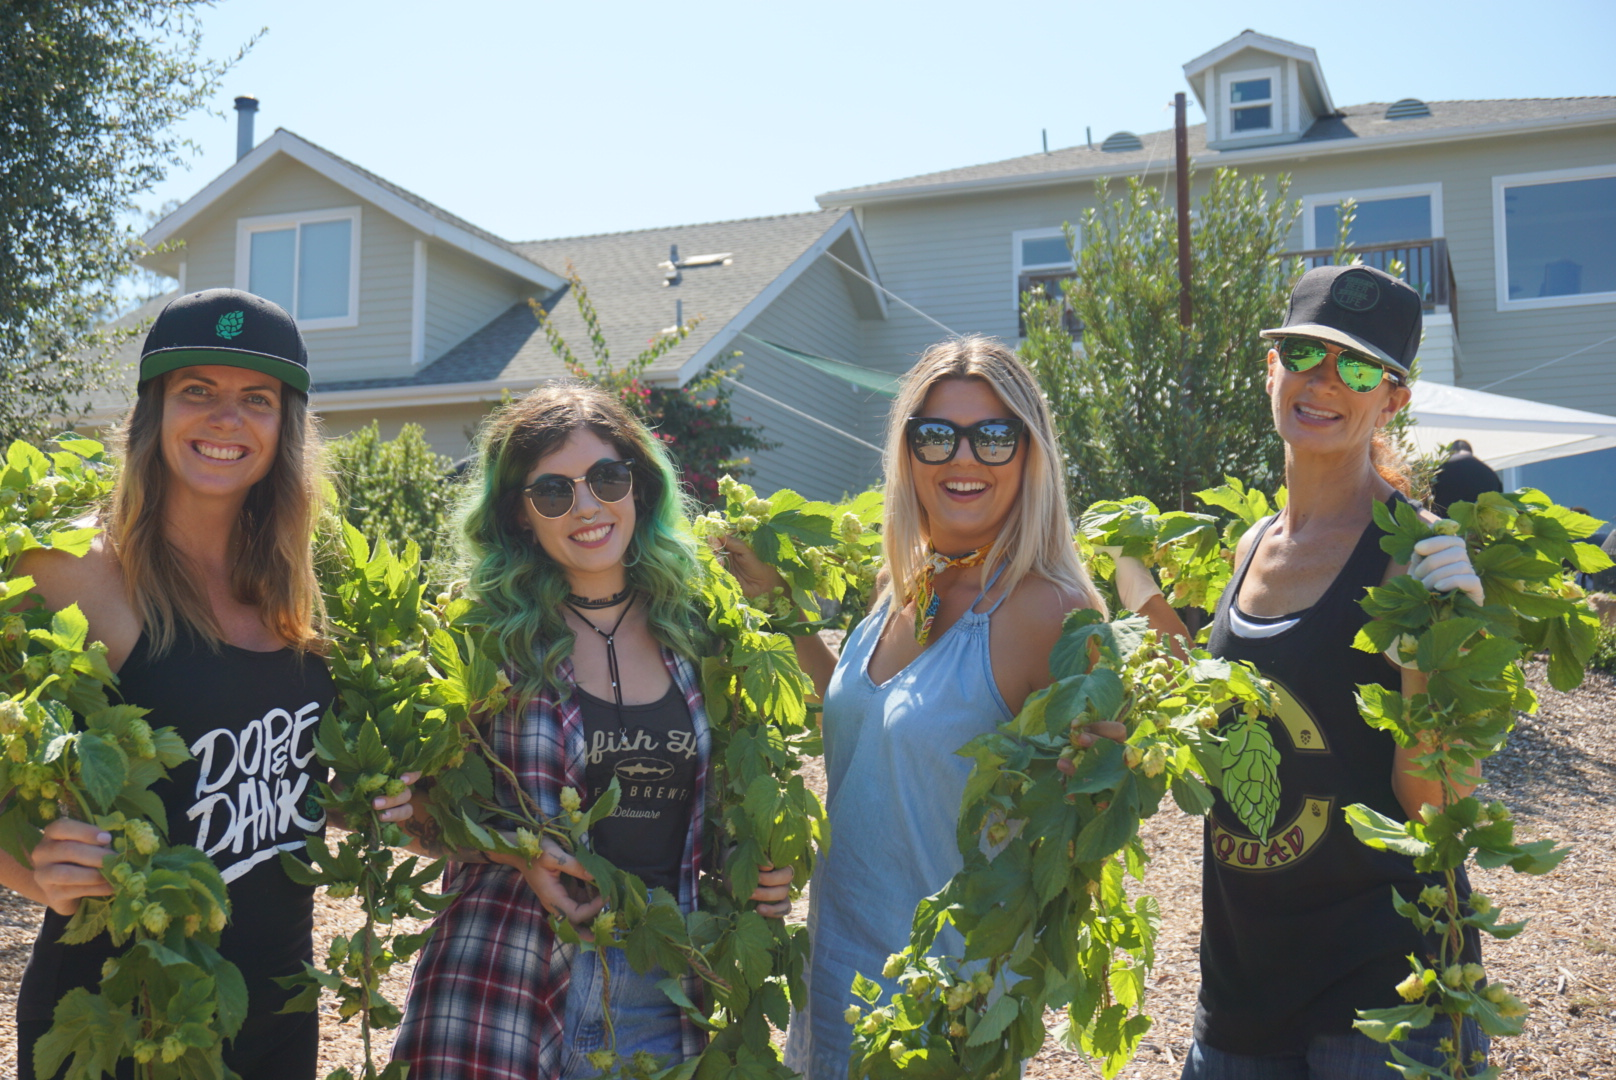 Some amazing beer babes! Starting from right to left, Victoria (@tapswithtor), Megan (@isbeeracarb), Myself (@coco_sandiego) and our amazing organizer, Kristine (@womensbeercollective).